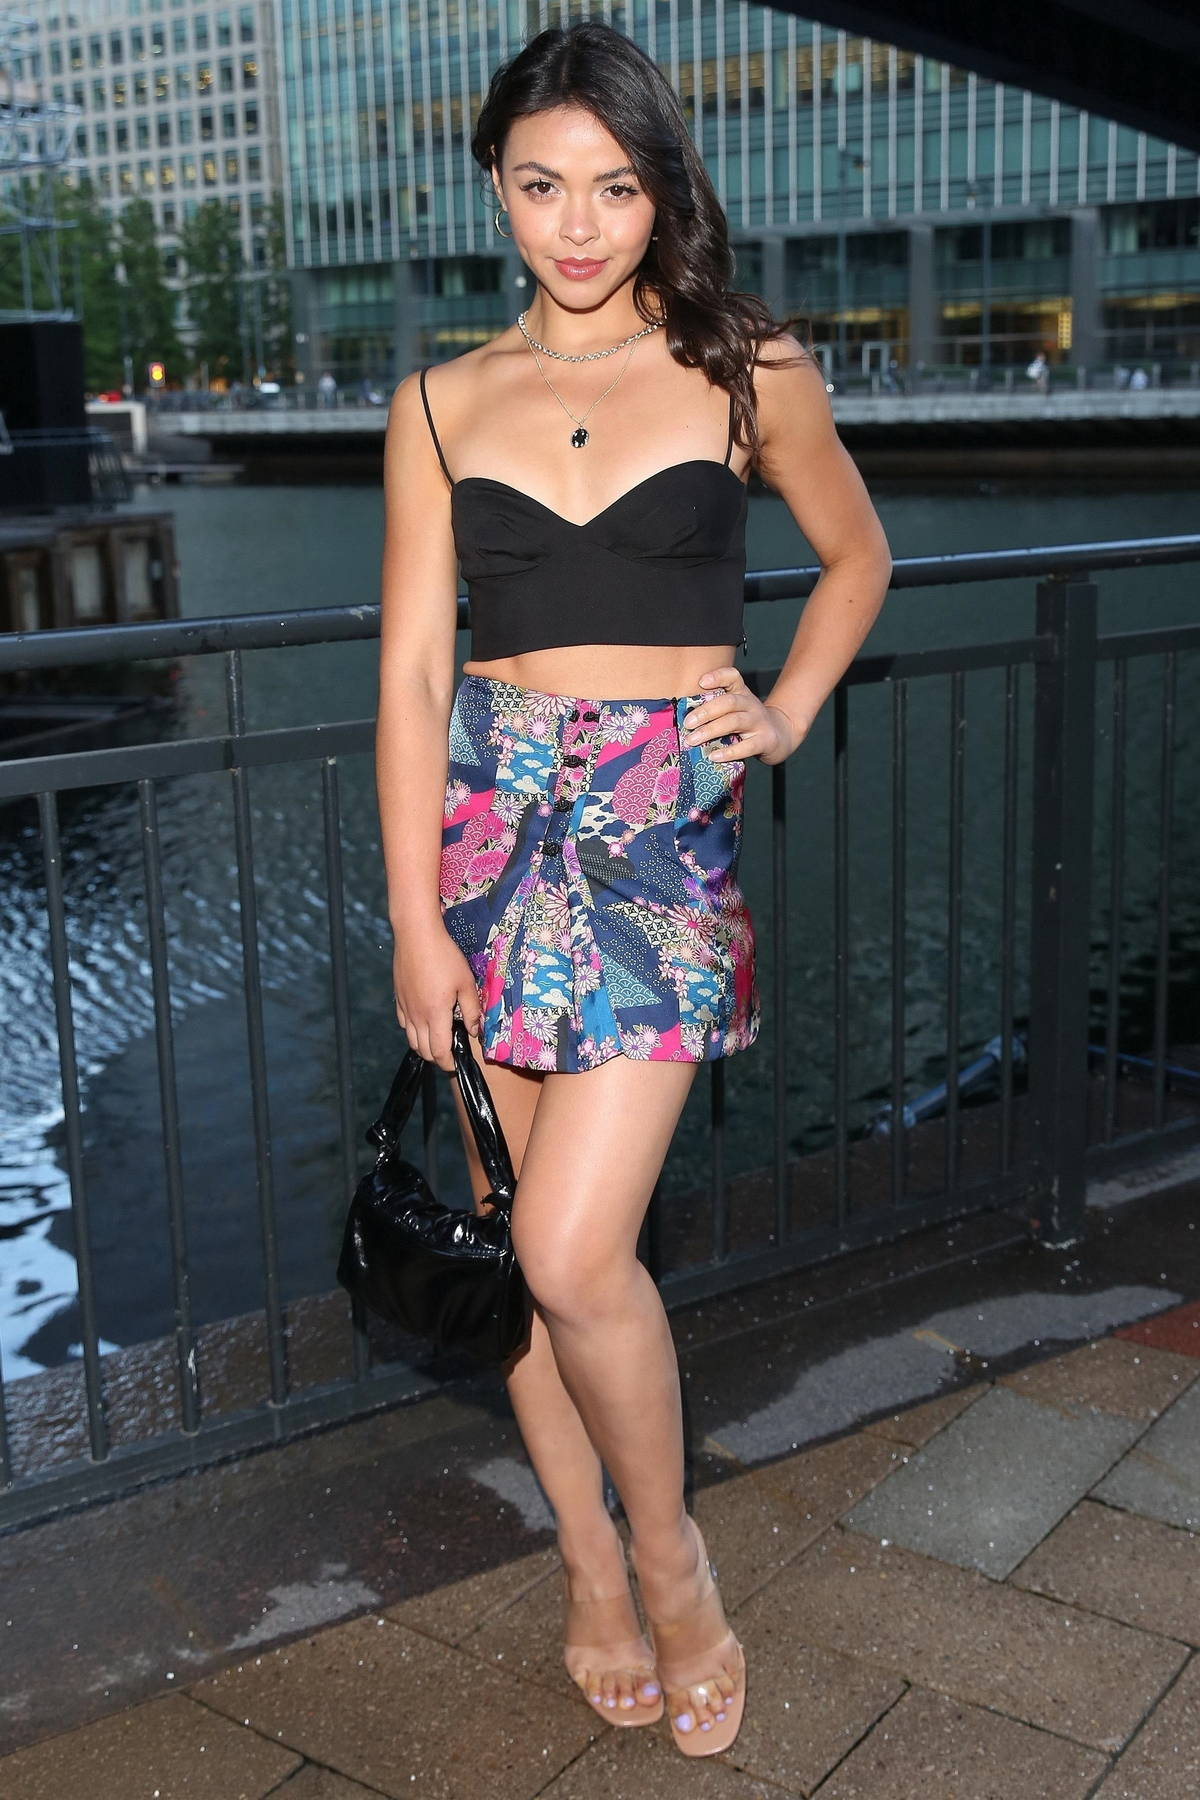 Vanessa Bauer poses in a tiny cropped top and mini skirt at the Six by Nico restaurant launch in Canary Wharf in London, UK